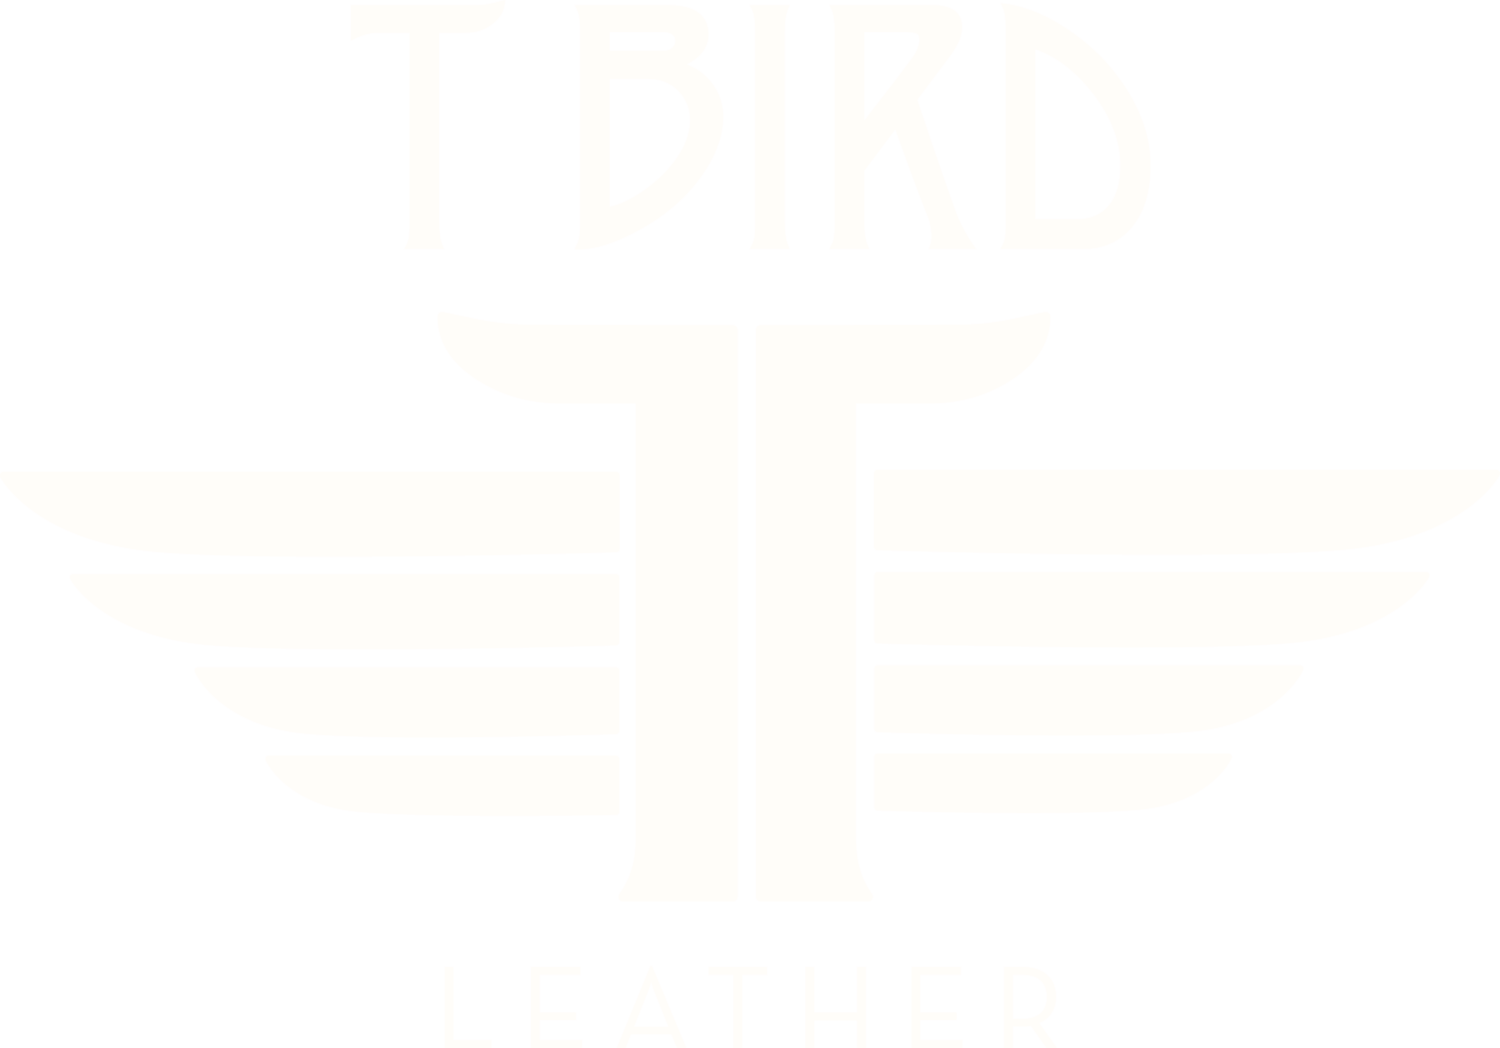 T Bird Leather